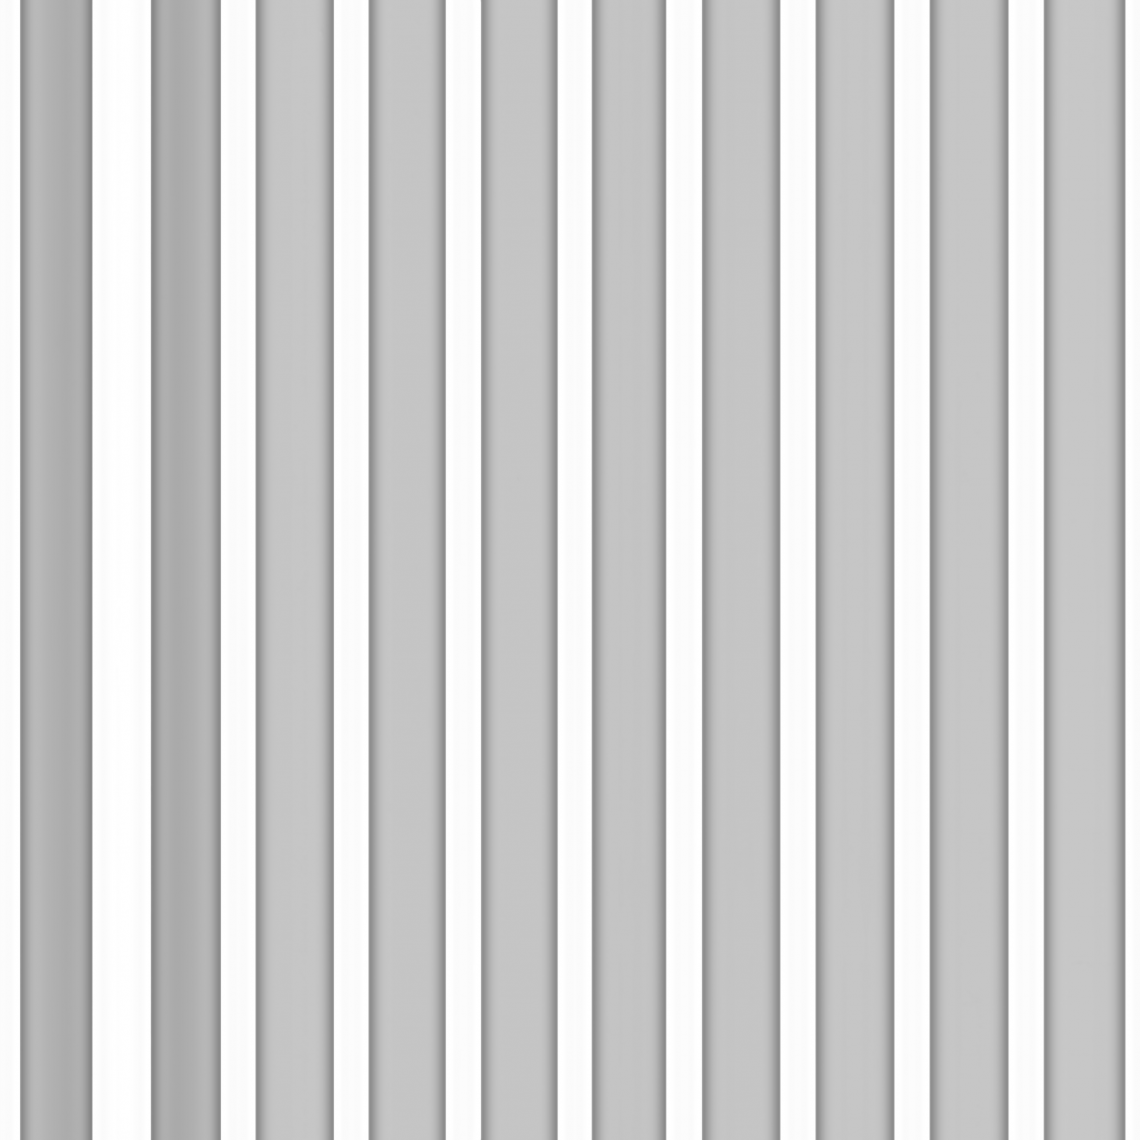 Corrugated Metal Texture Png - Corrugated-Metal-01-Ambient-Occlusion - Good Textures